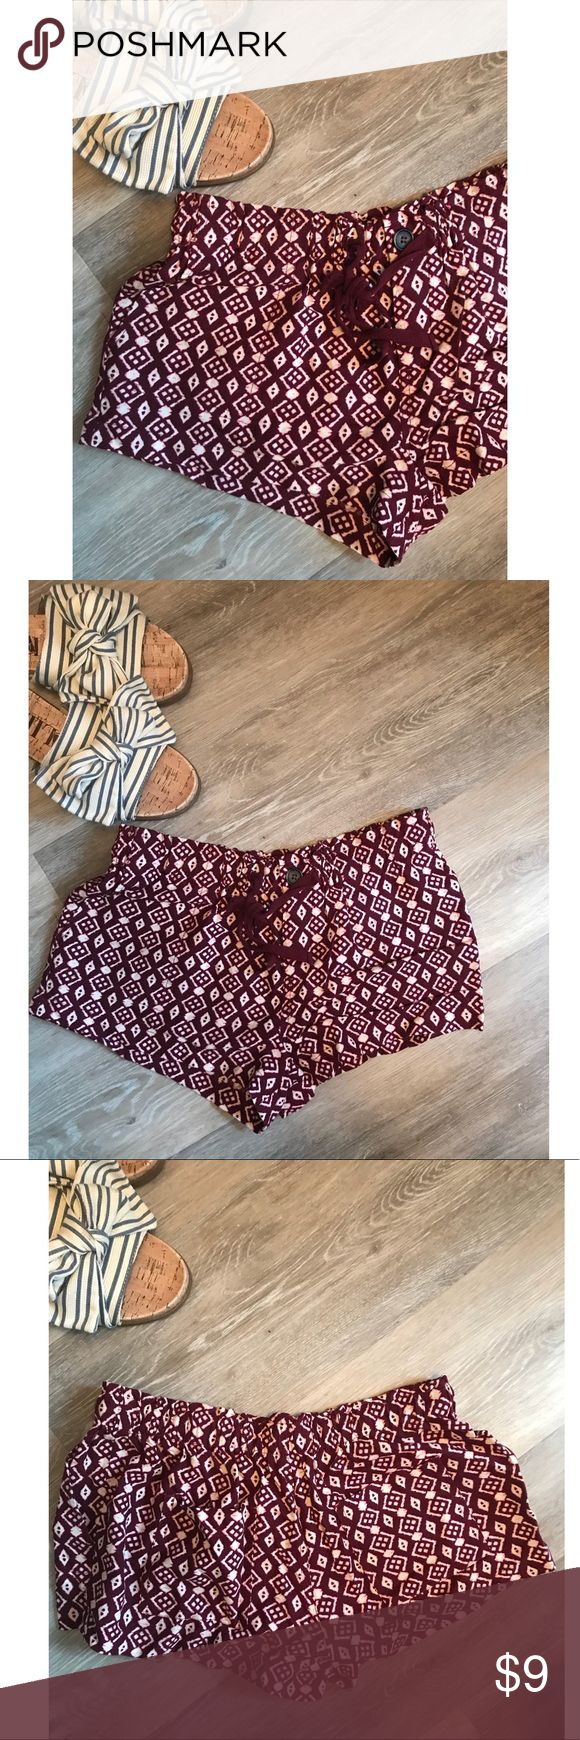 Forever 21 Aztec shorts They are worn but in good condition. Dry cleaned and ready to ship. Sorry no trades xo Forever 21 Shorts